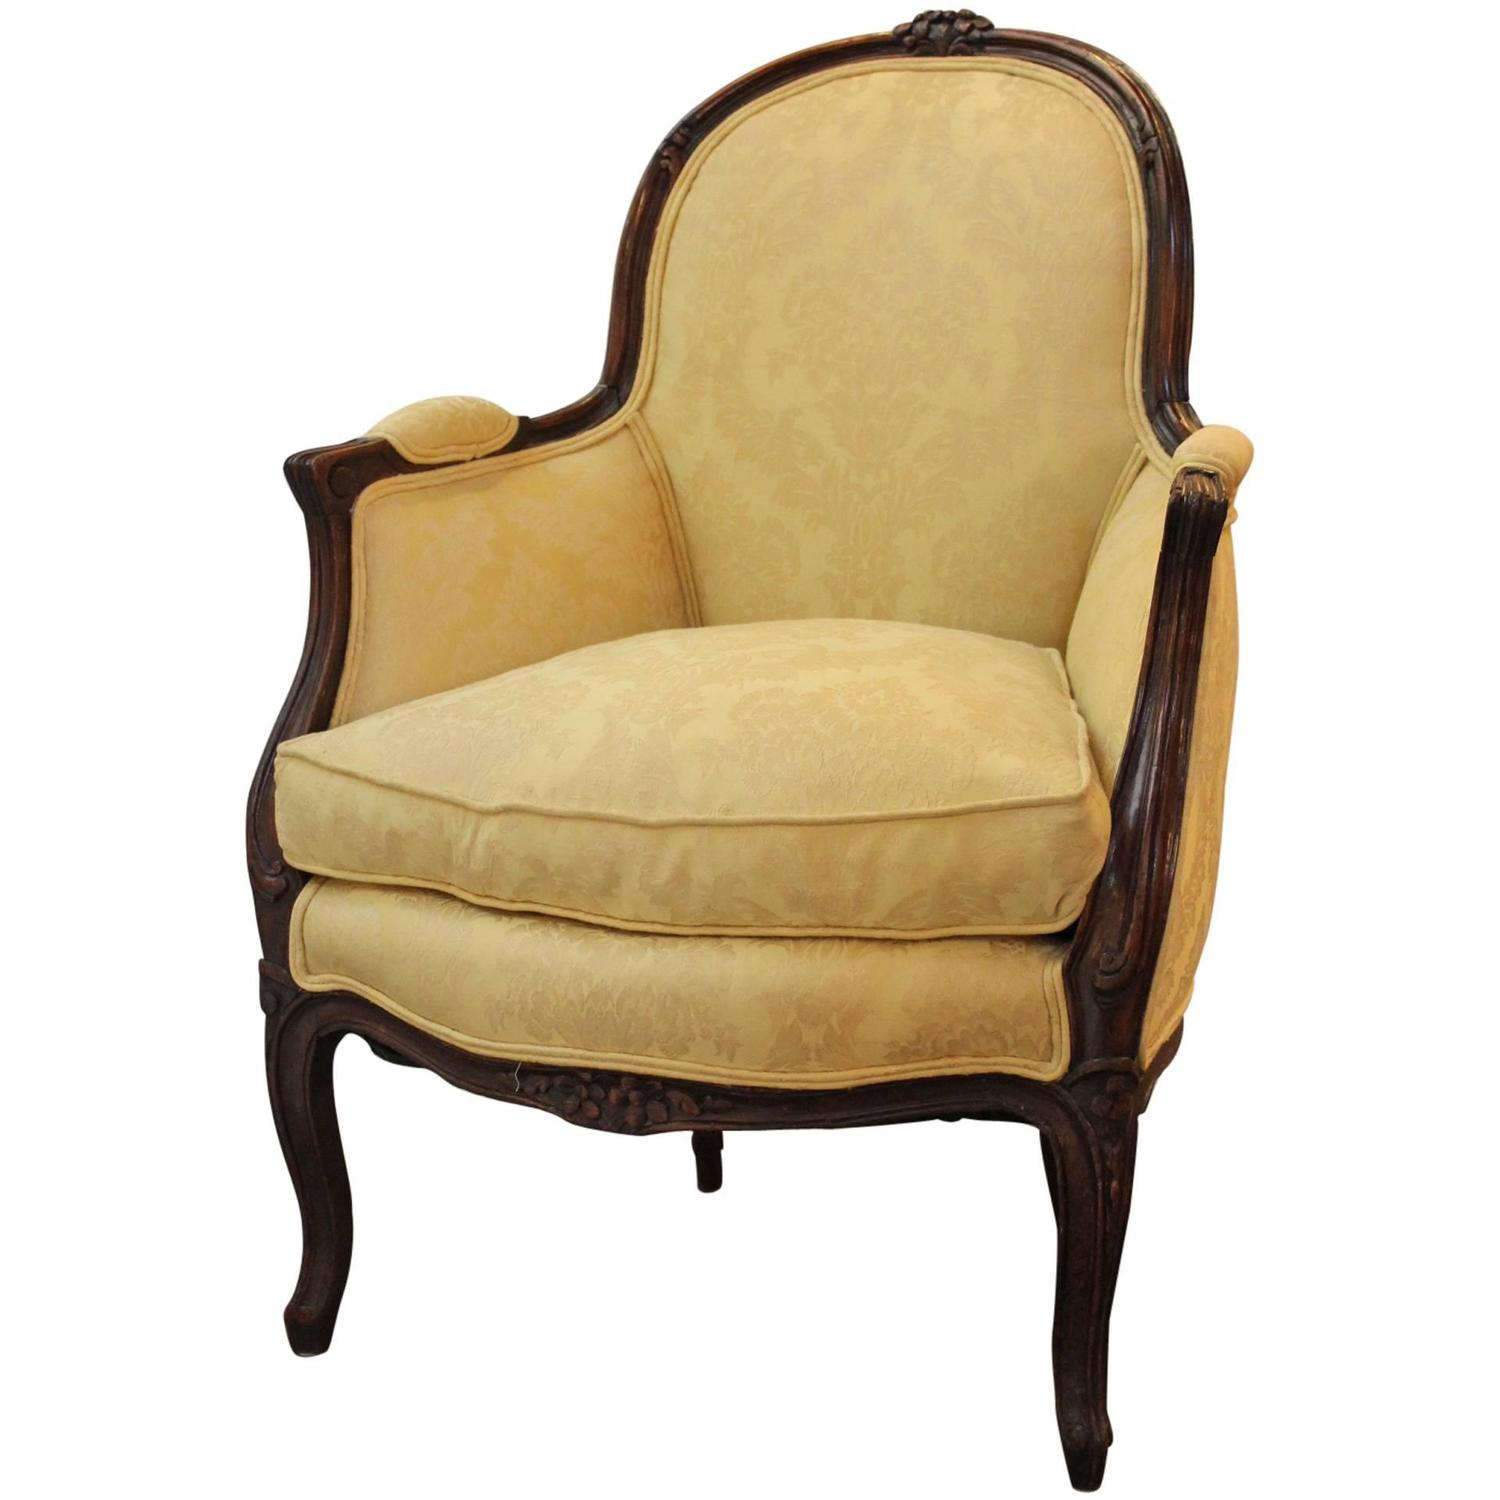 bergere chairs for sale serta jennings chair review antique carved oak french at 1stdibs